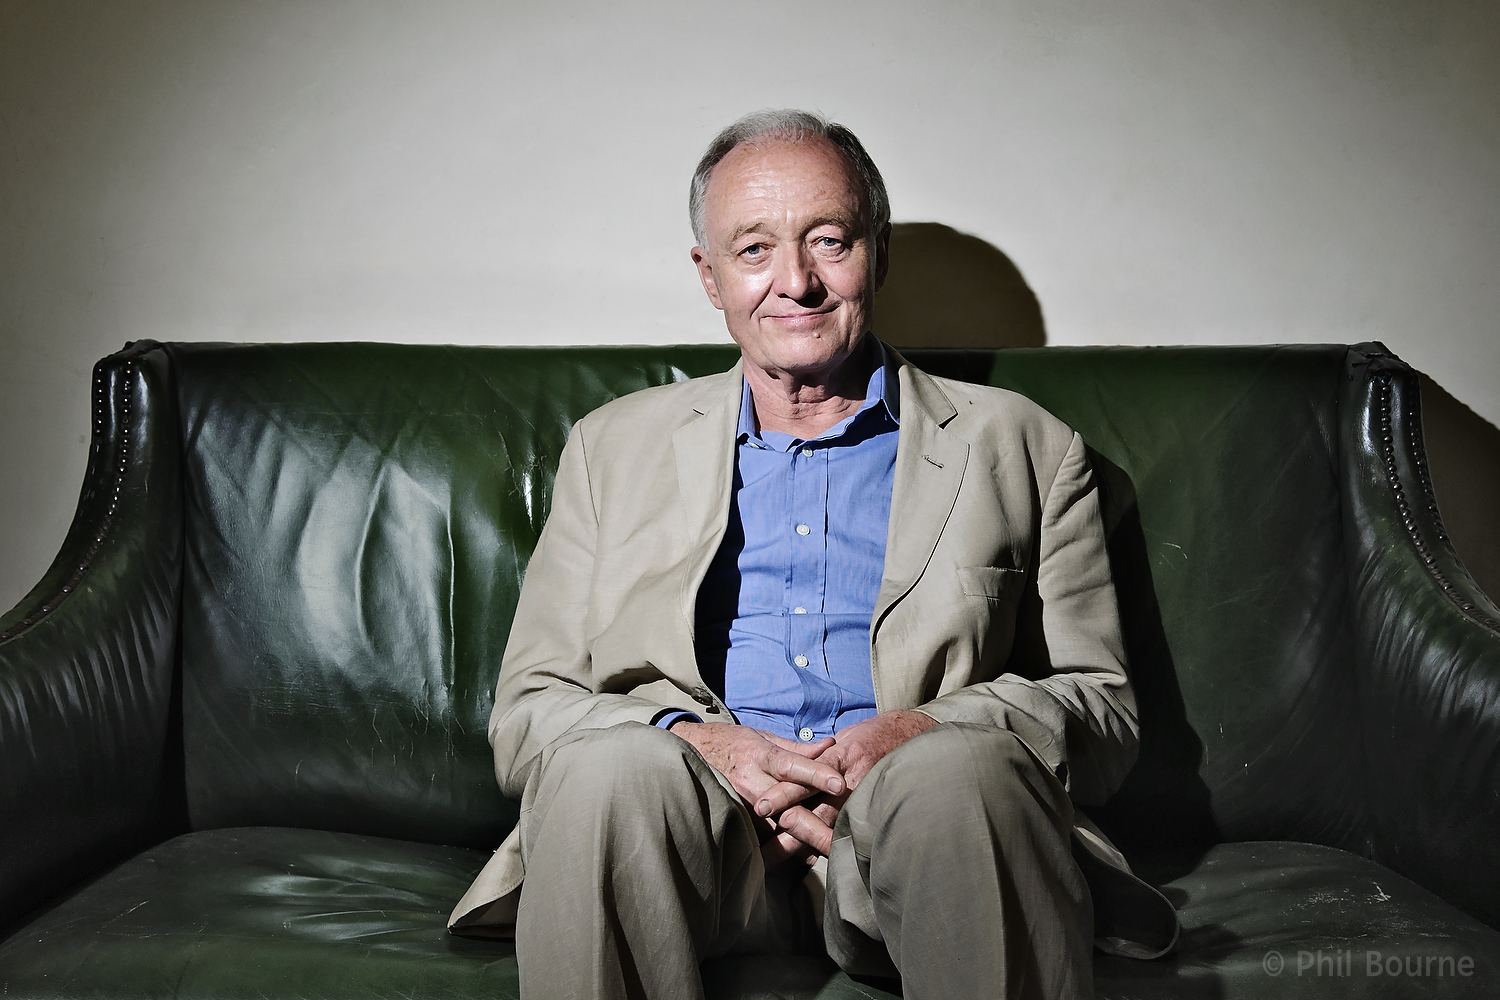 Portrait of Labour MP and former Mayor of London Ken Livingstone, taken backstage at Stand Up For Labour comedy night on the 22nd July 2012. Picture by Phil Bourne